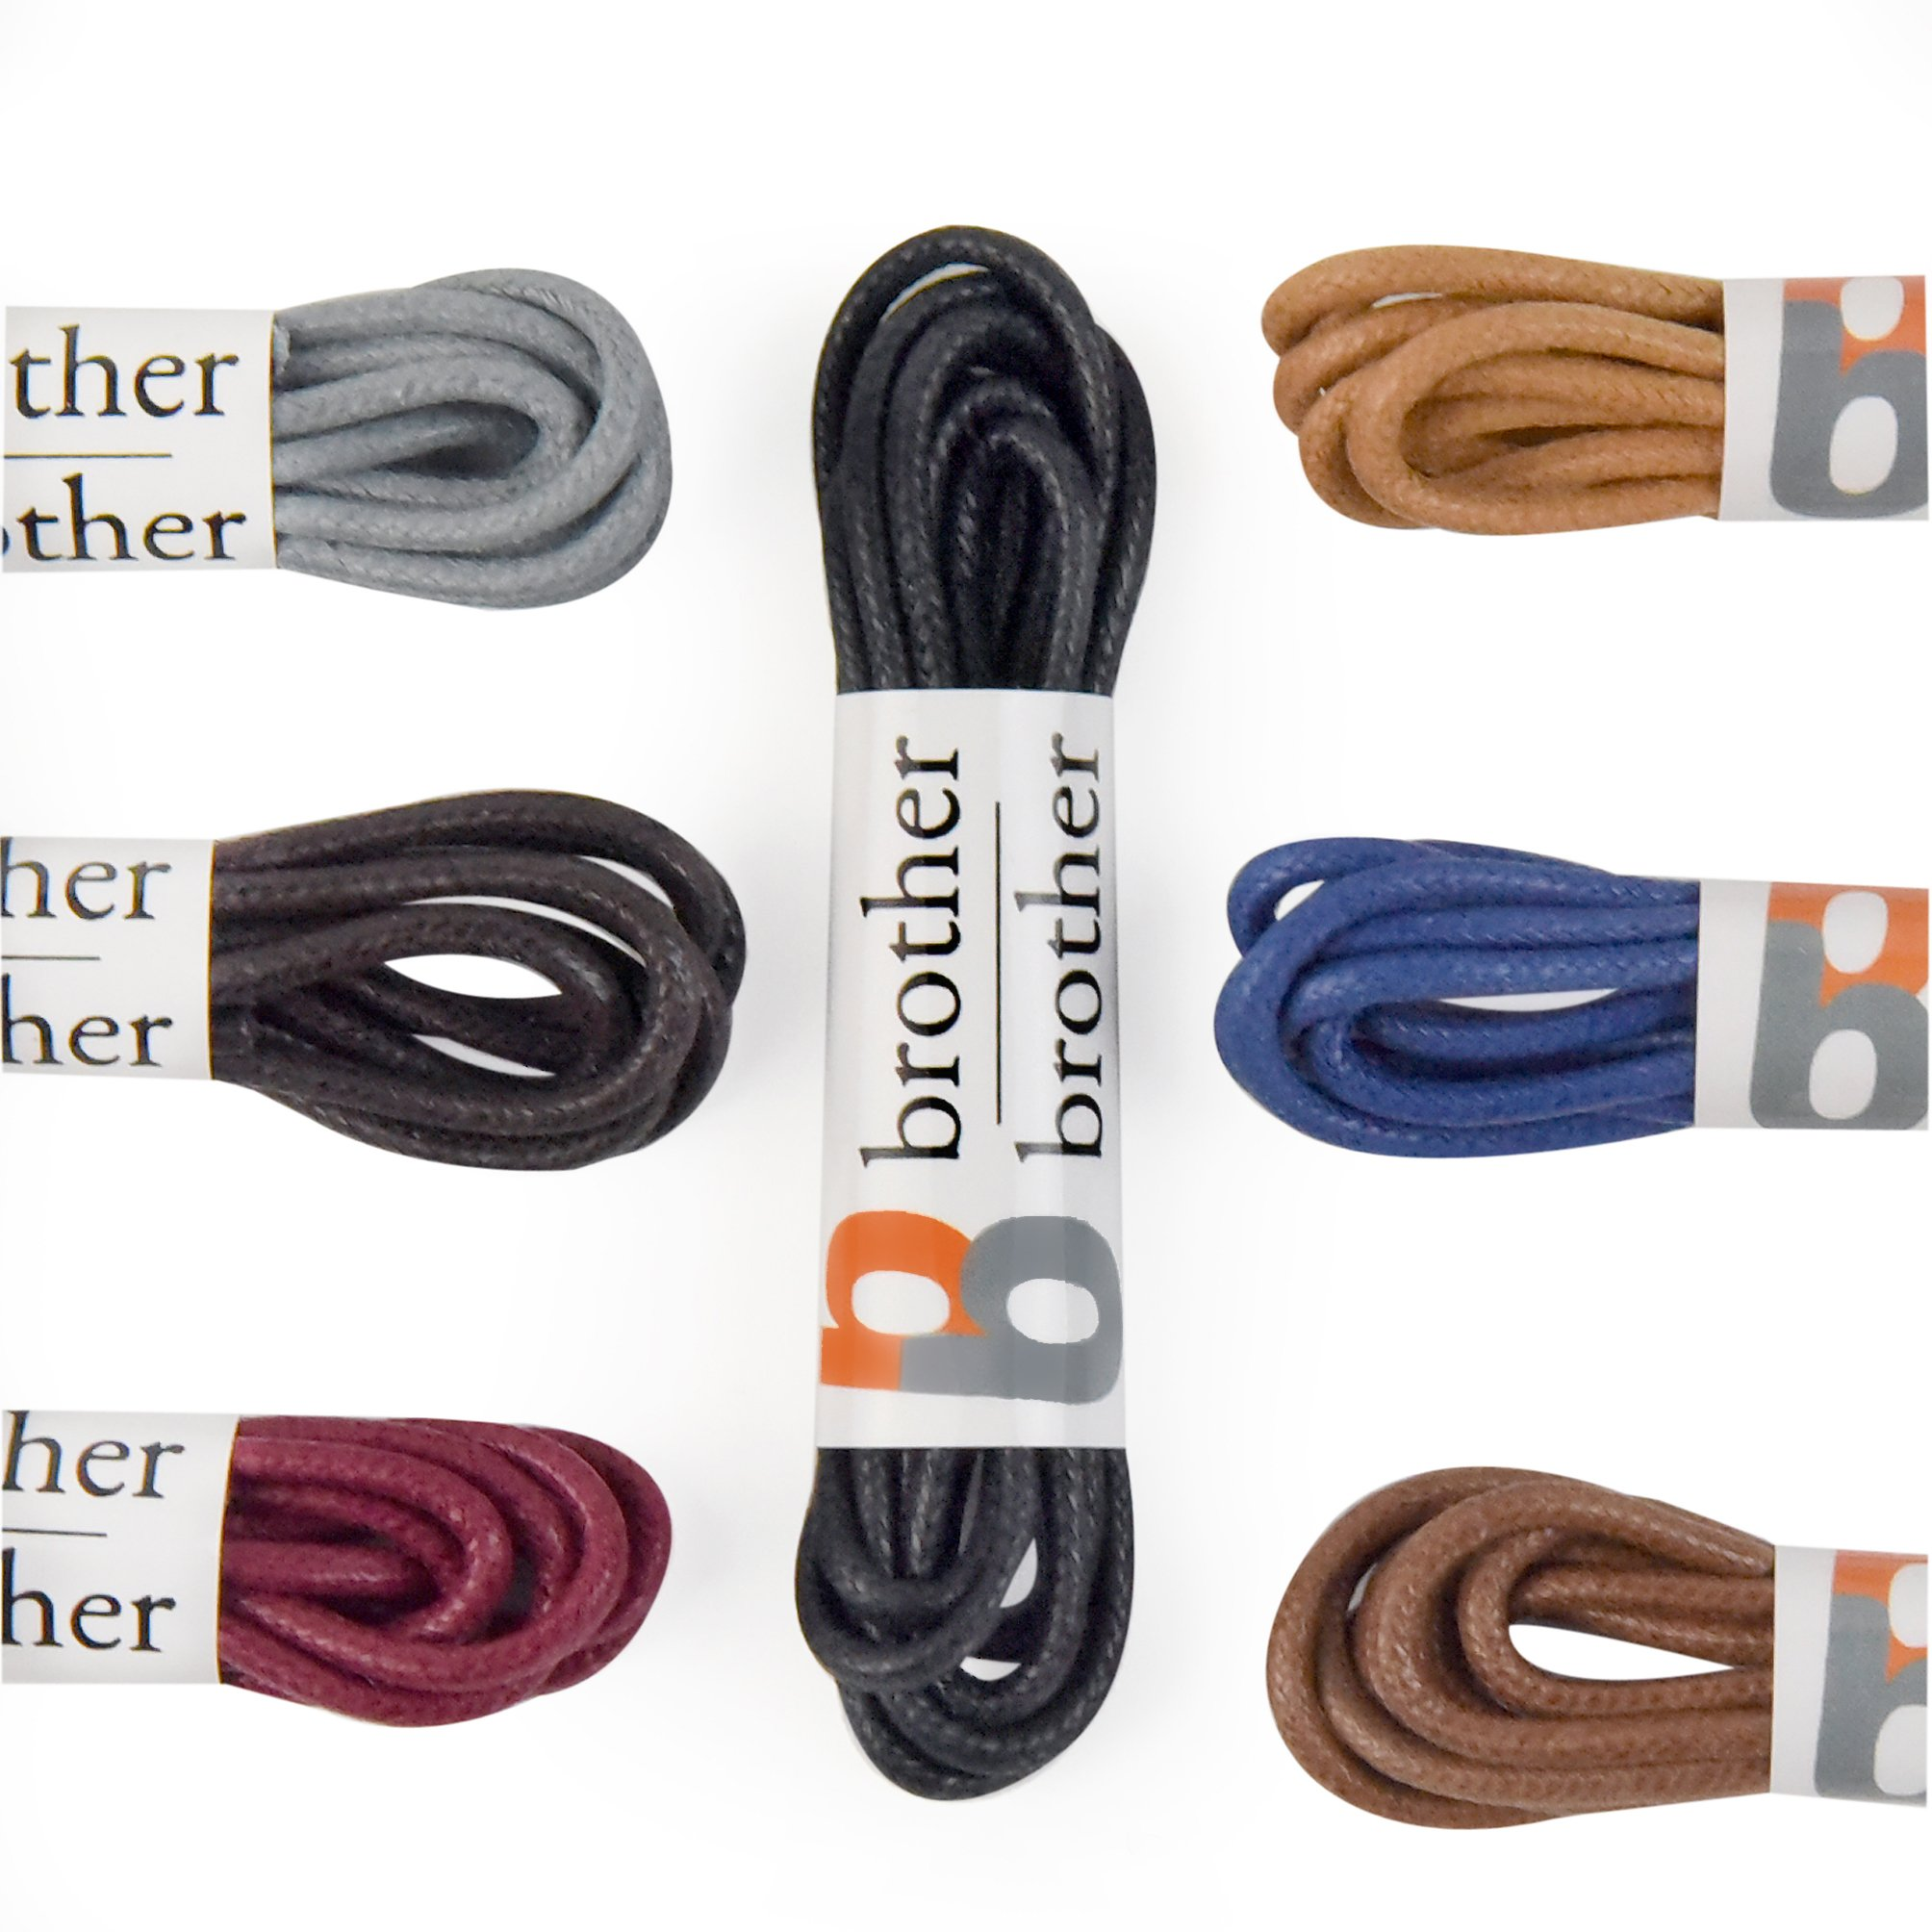 Brother Brother Colored Oxford Shoe Laces for Men (7 Pairs) (30'') by Brother Brother (Image #5)